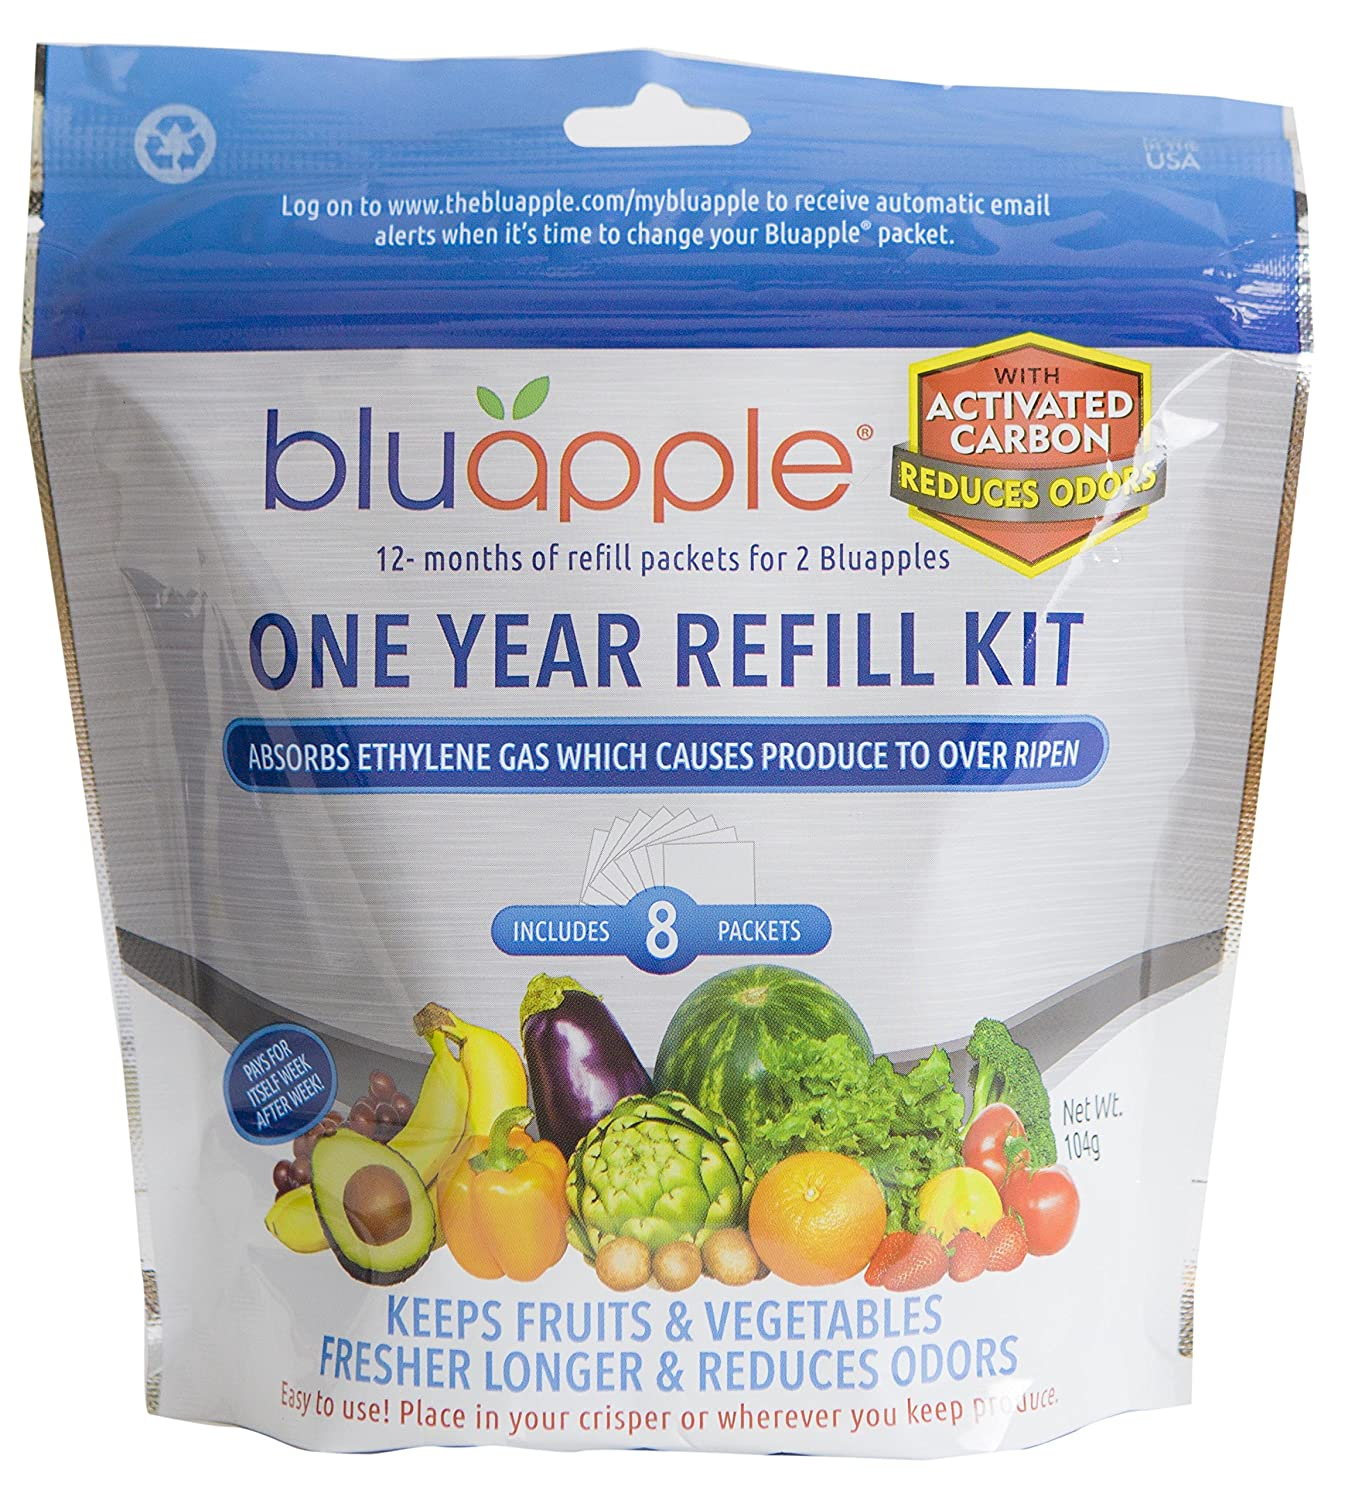 Bluapple One Year Refill Kit with Activated Carbon Keeps Produce Fresher Longer AND Absorbs Odors For Fresh Fruits and Vegetable Save Money Reduce Waste! Aureus Product Innovations Inc